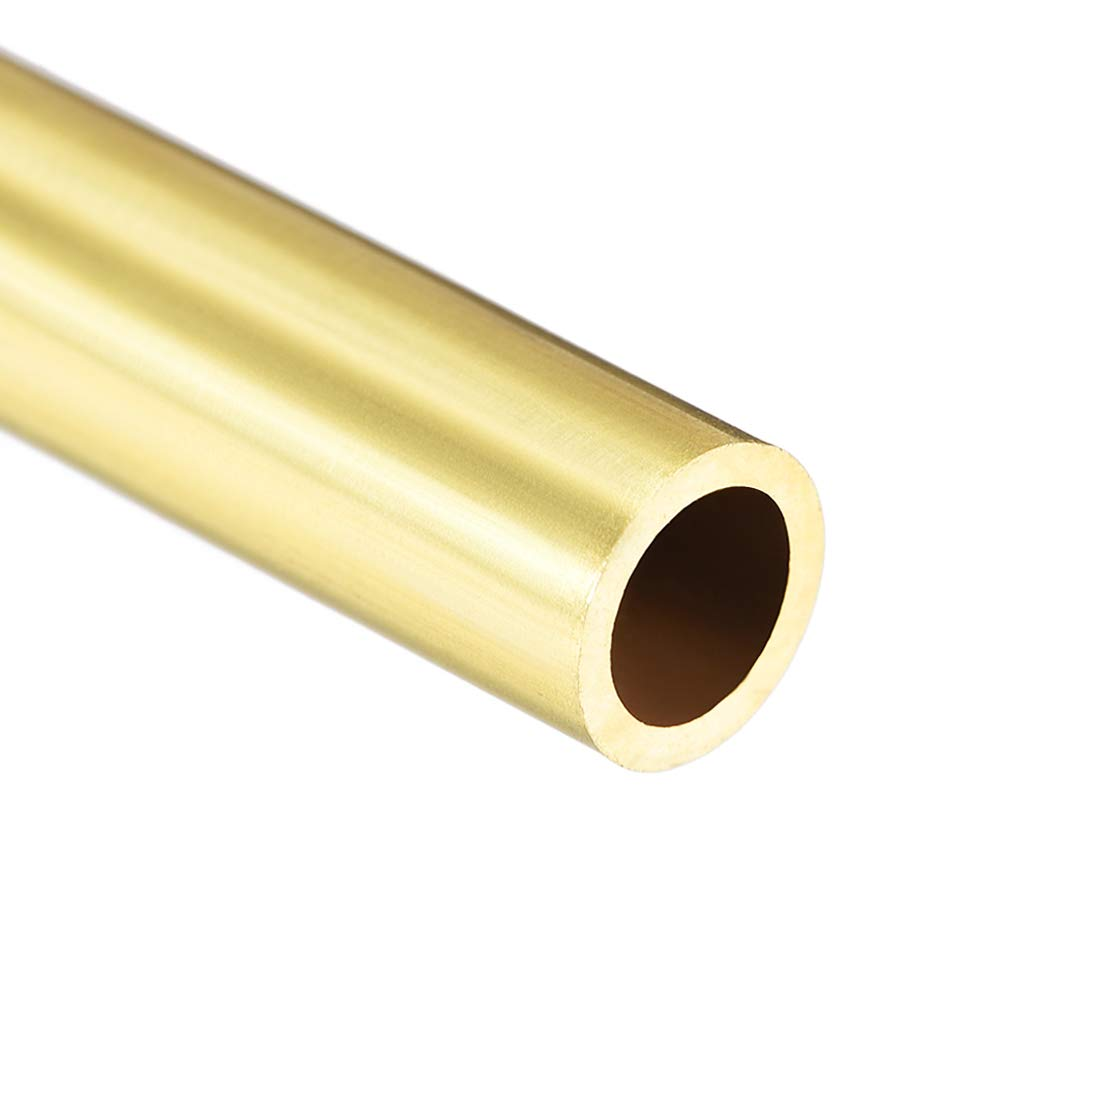 uxcell Brass Round Tube 300mm Length 10mm OD 1mm Wall Thickness Seamless Straight Pipe Tubing 3 Pcs